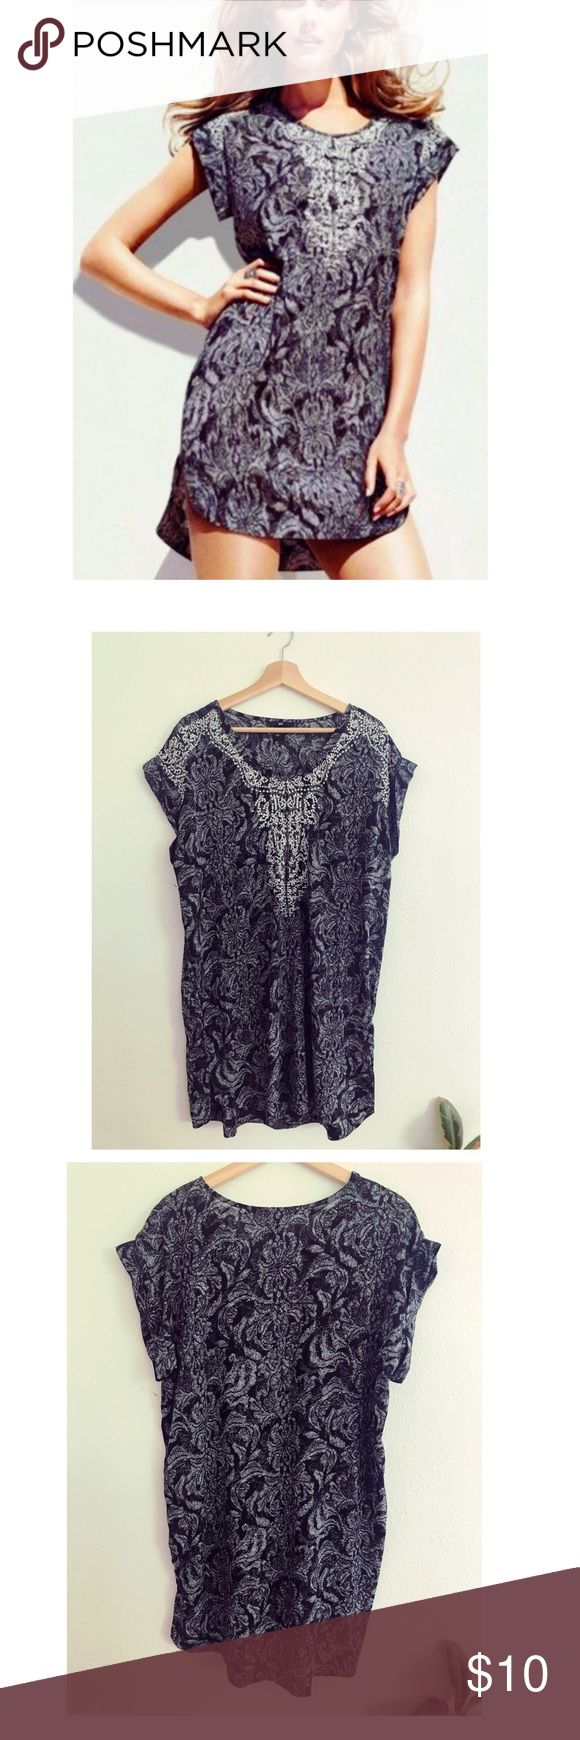 H&M embroidered tunic dress New without tags. Part of H&M's New Icon collection a few years ago. Paid $20 for this.  🚫No trades ❓Ask questions BEFORE purchasing or offering  👍🏾Accepting offers  📦Ships in one business day H&M Tops Tunics